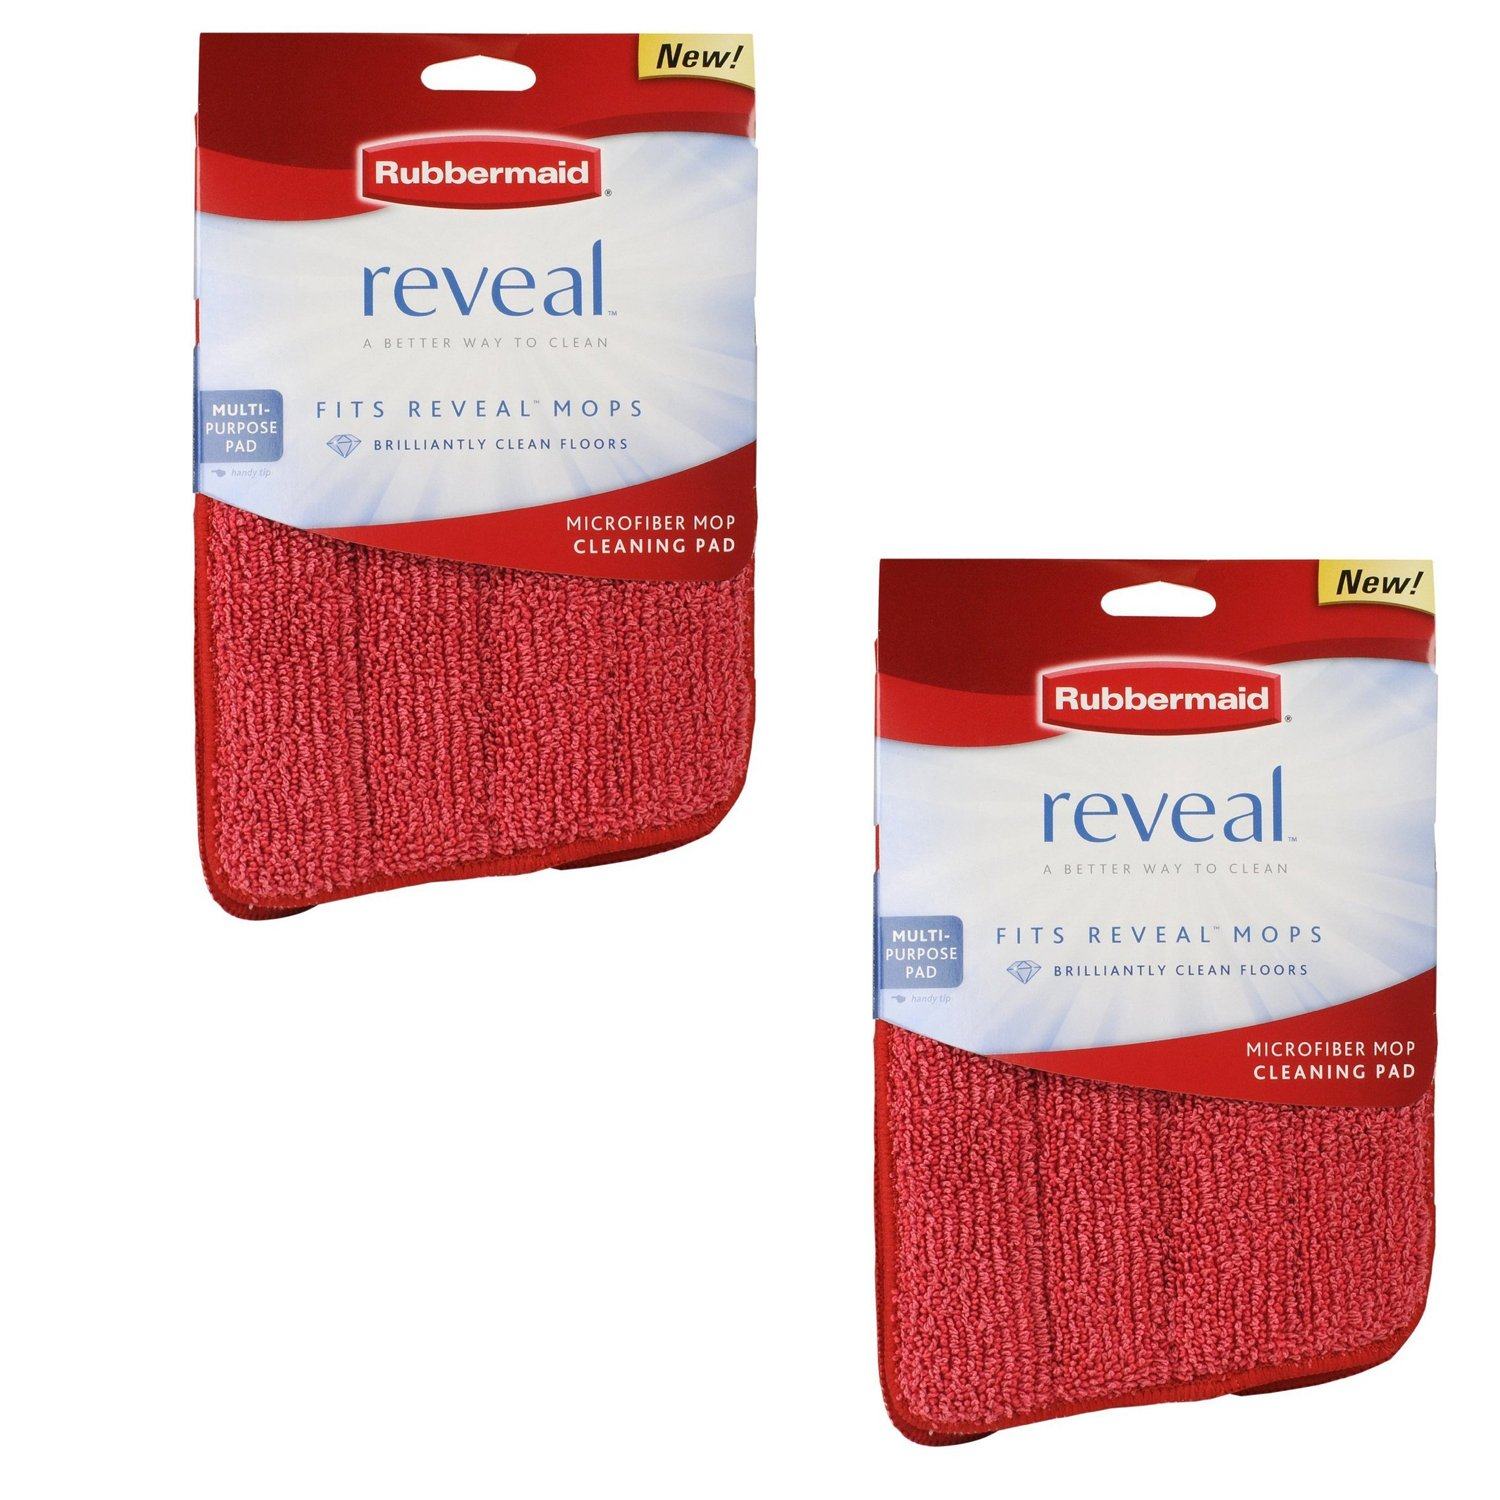 """Rubbermaid - Reveal Mop Microfiber Cleaning Pad, Red, 15"""" Wide (2-Pack)"""